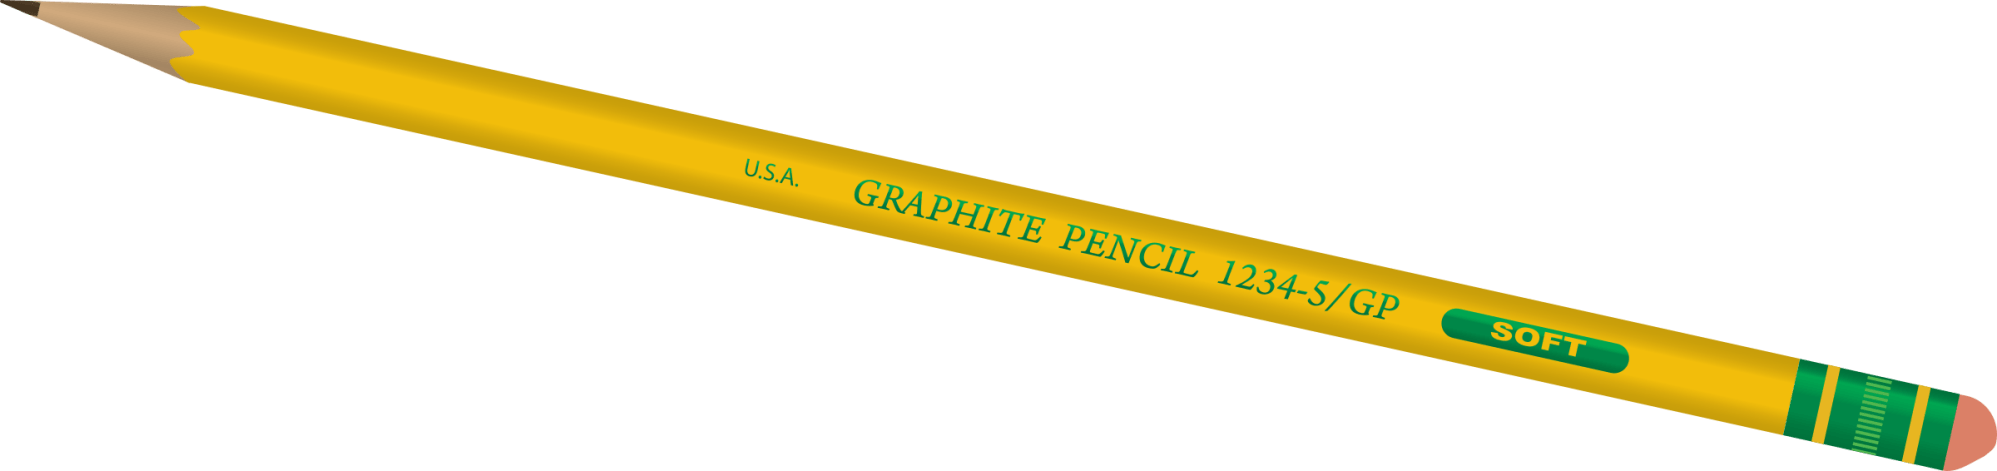 hight resolution of pencil png transparent images png all pencil hd png